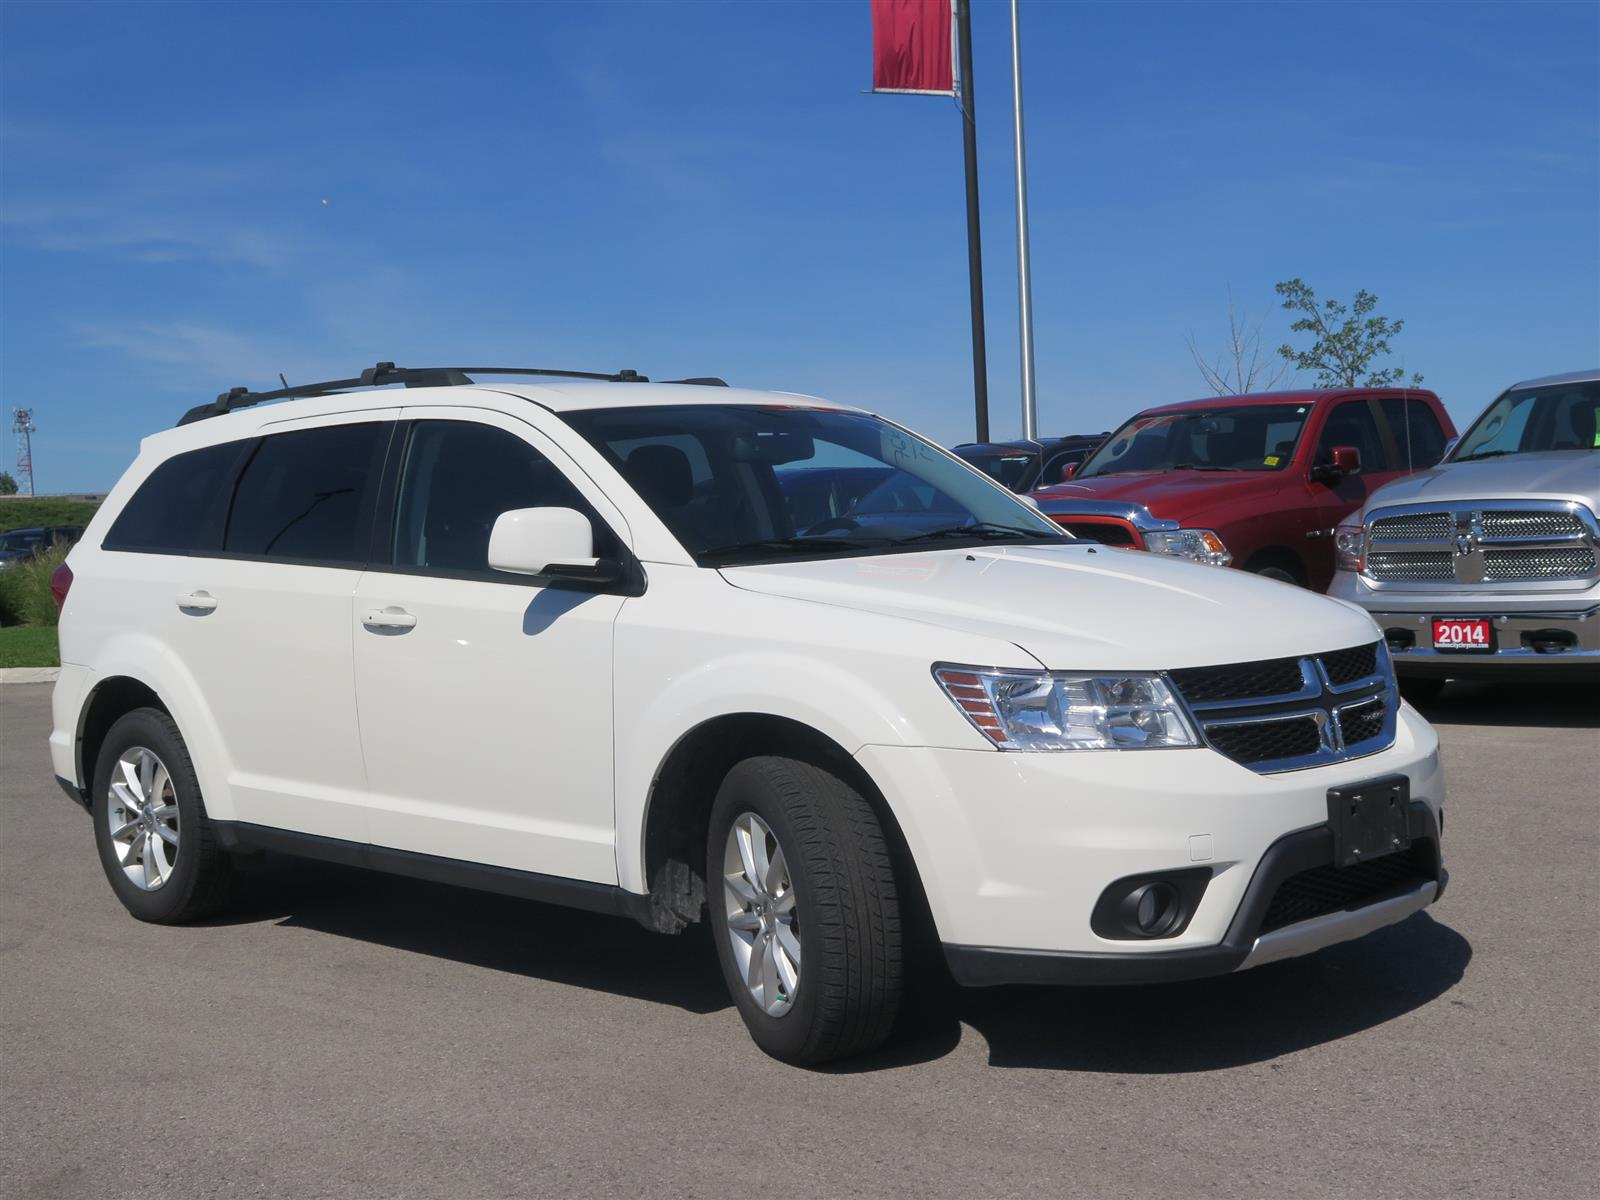 2015 dodge journey new 17363. Black Bedroom Furniture Sets. Home Design Ideas